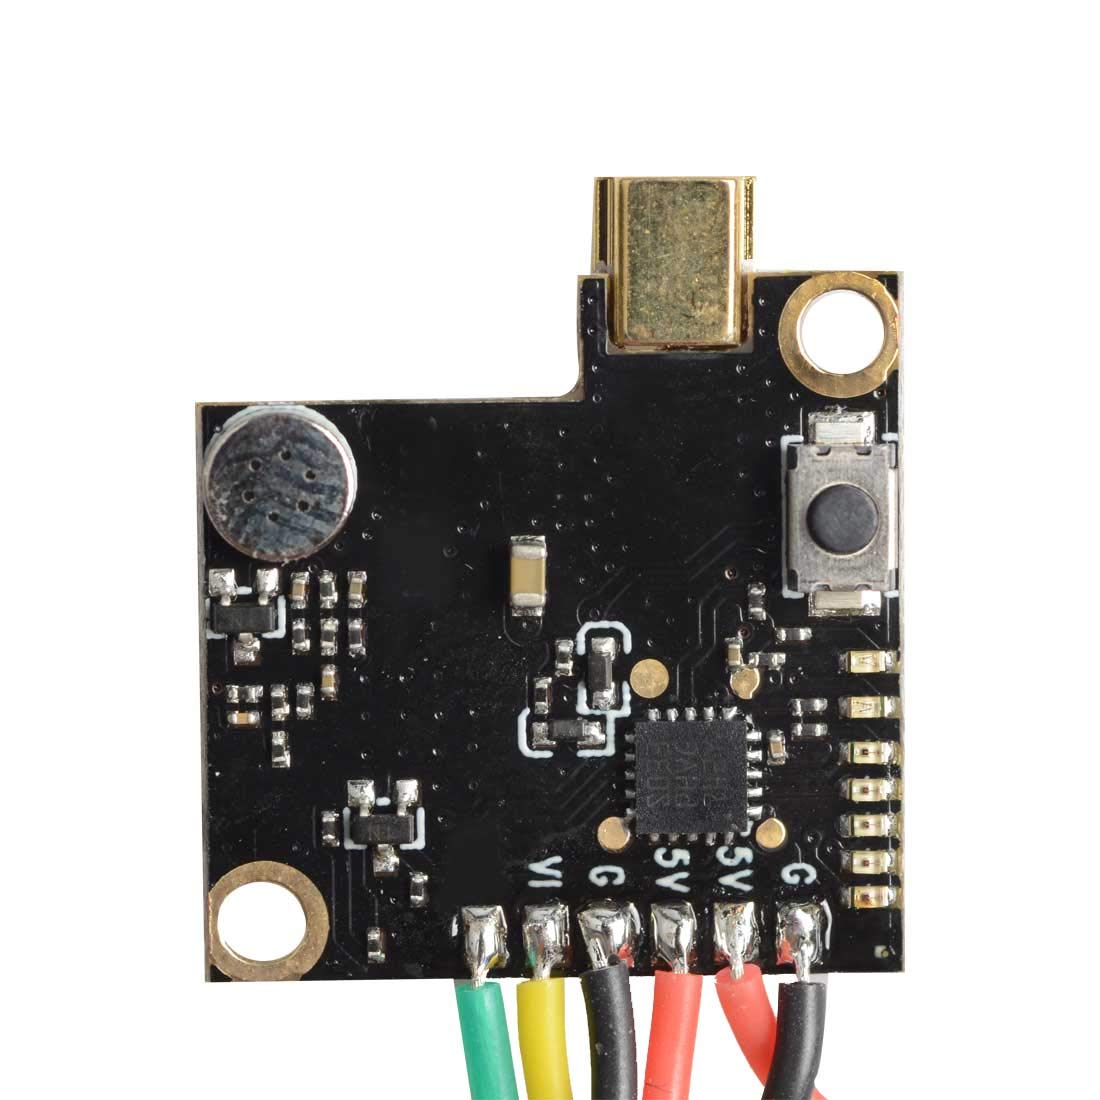 AKK Oscar's Backpack VTX 0.01mW/25mW/200mW with OSD Configuration Support Smart Audio for FPV Drone by AKK